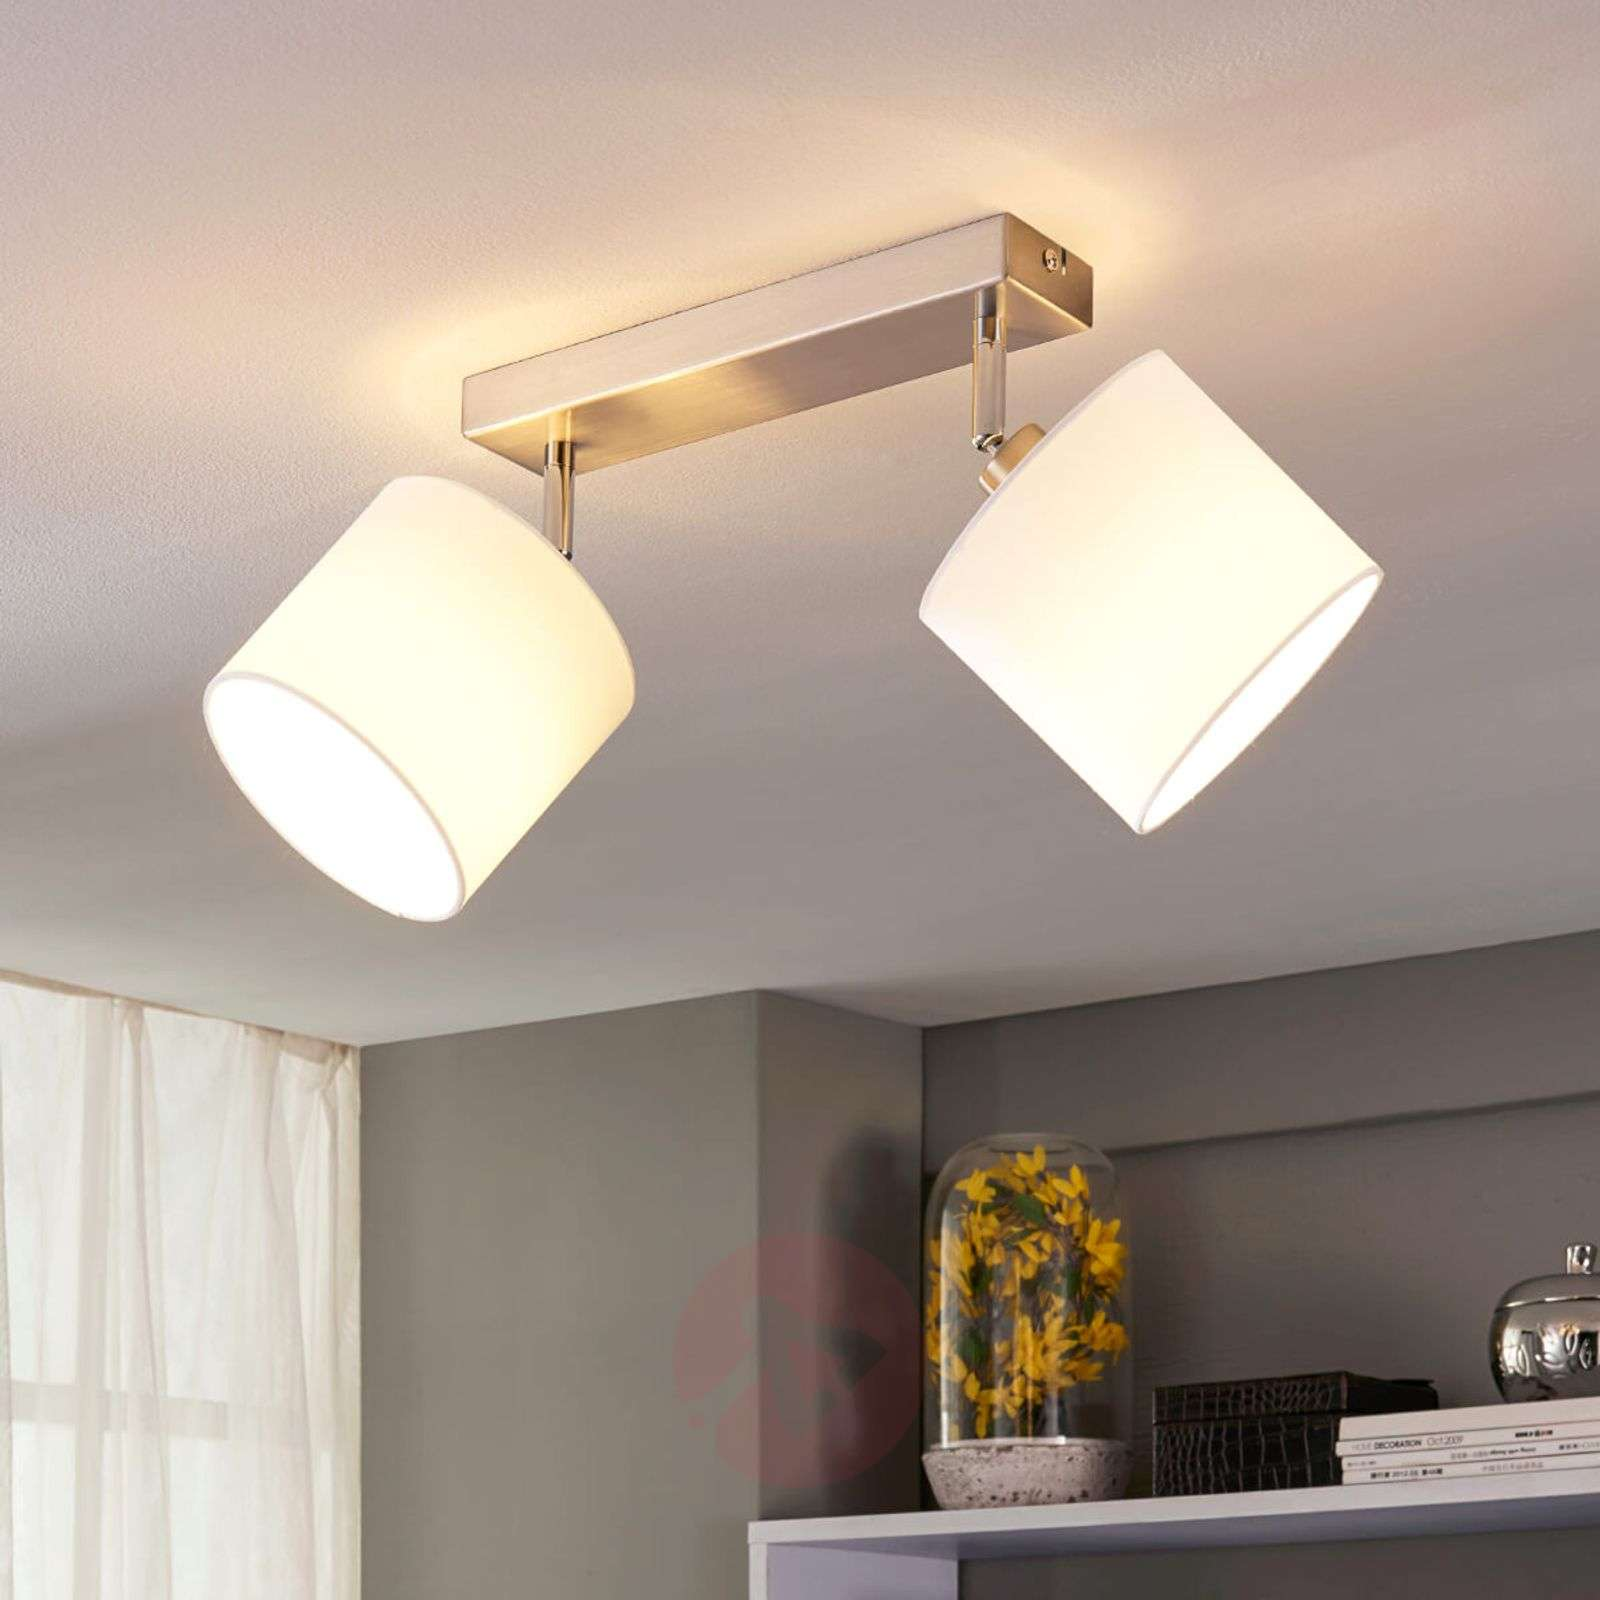 Two-bulb LED ceiling lamp with fabric lampshades-9621106-010